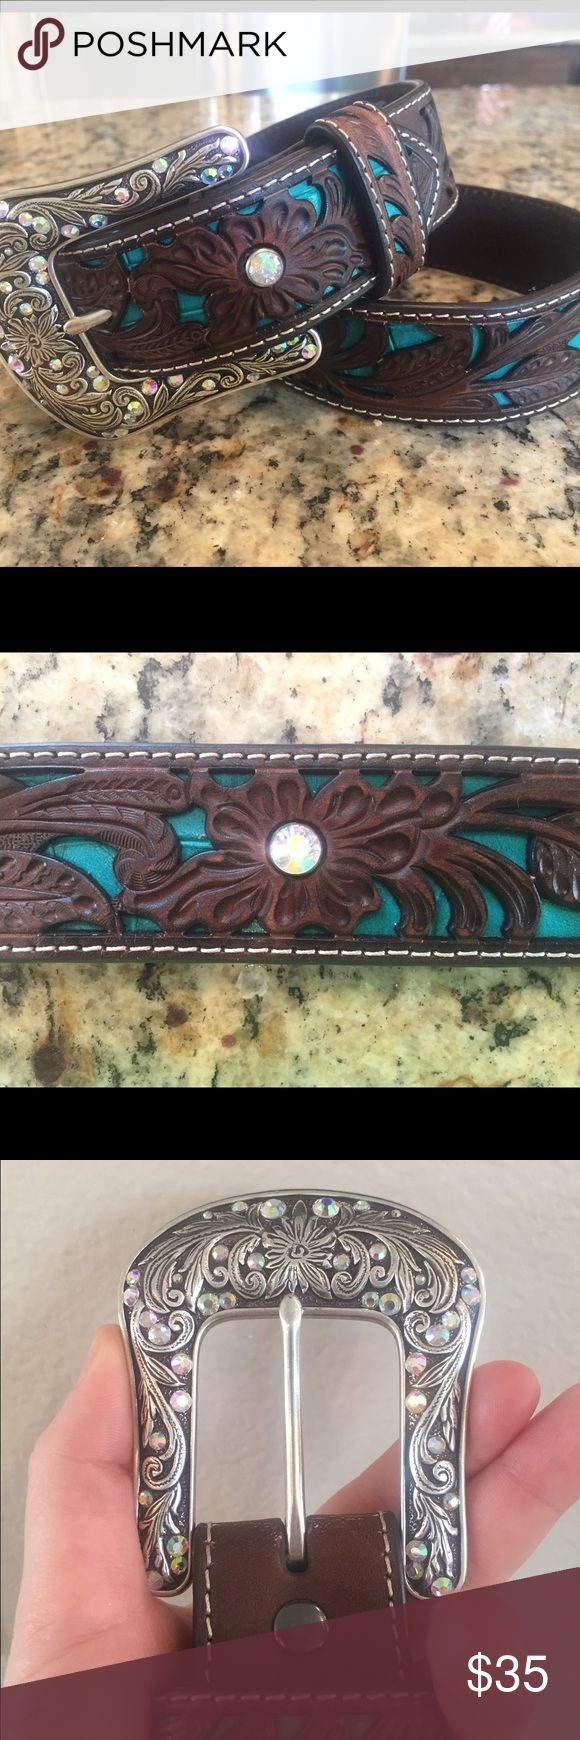 Ariat Leather Rhinestone Cowgirl Bling Belt This Ariat belt is in perfect condition. It's brown leather with a turquoise green - blue underlay. It has white stitching and a flower - floral pattern. It's too small for me and I have not even worn it once (was hoping to lose weight but didn't get there and now it's past the 30 days I can return it). There are no creases in the leather. Not a single jewel is missing. The silver belt buckle is also in perfect condition as shown. Size small. Ariat…